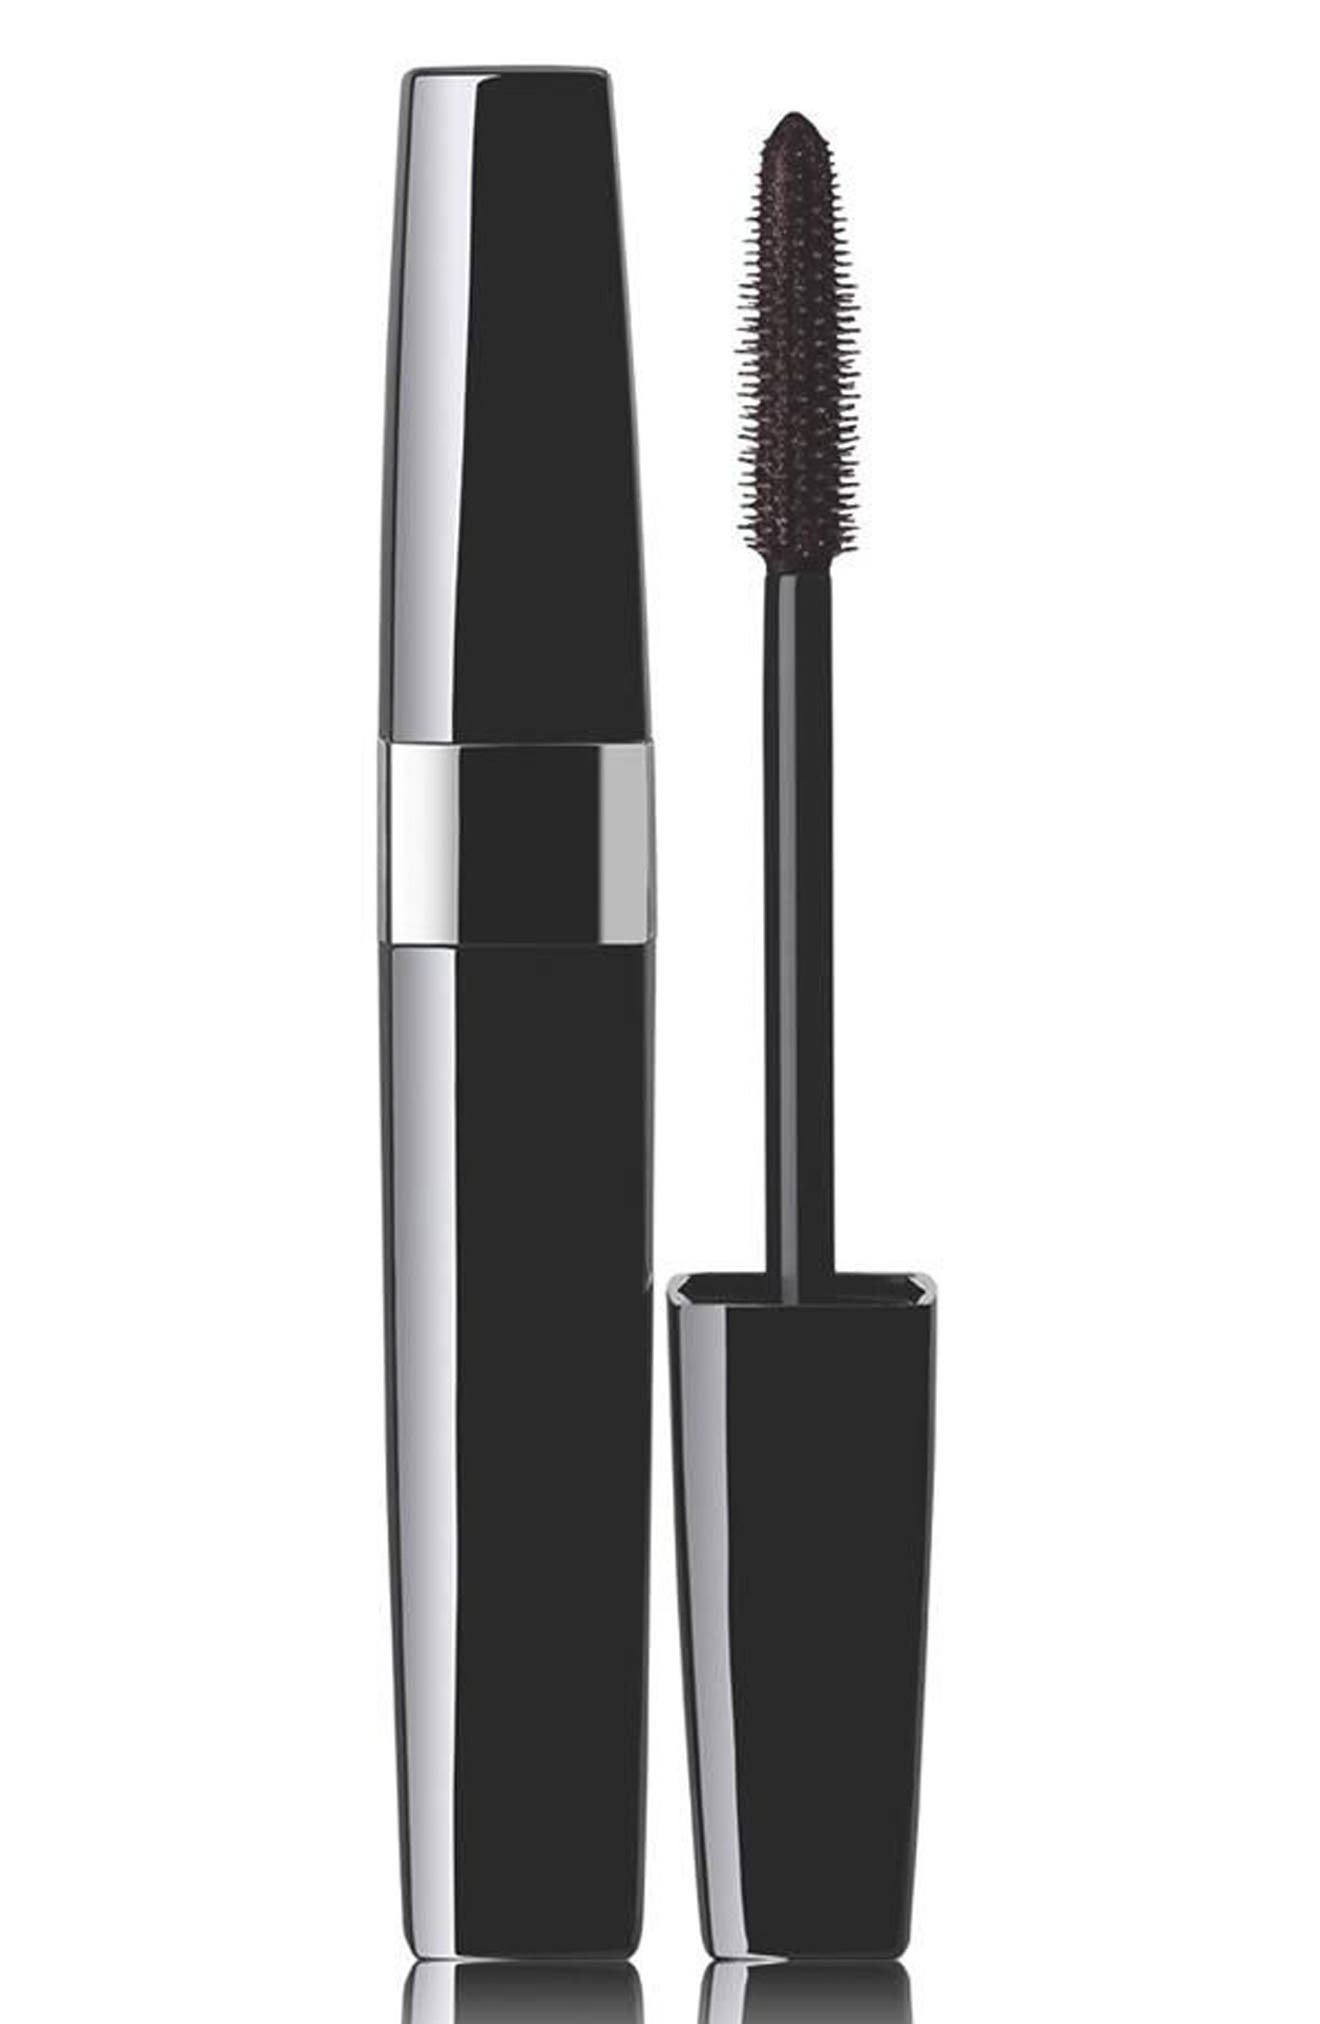 Alternate Image 1 Selected - CHANEL INIMITABLE INTENSE Mascara Multi-Dimensionnel Sophistiqué